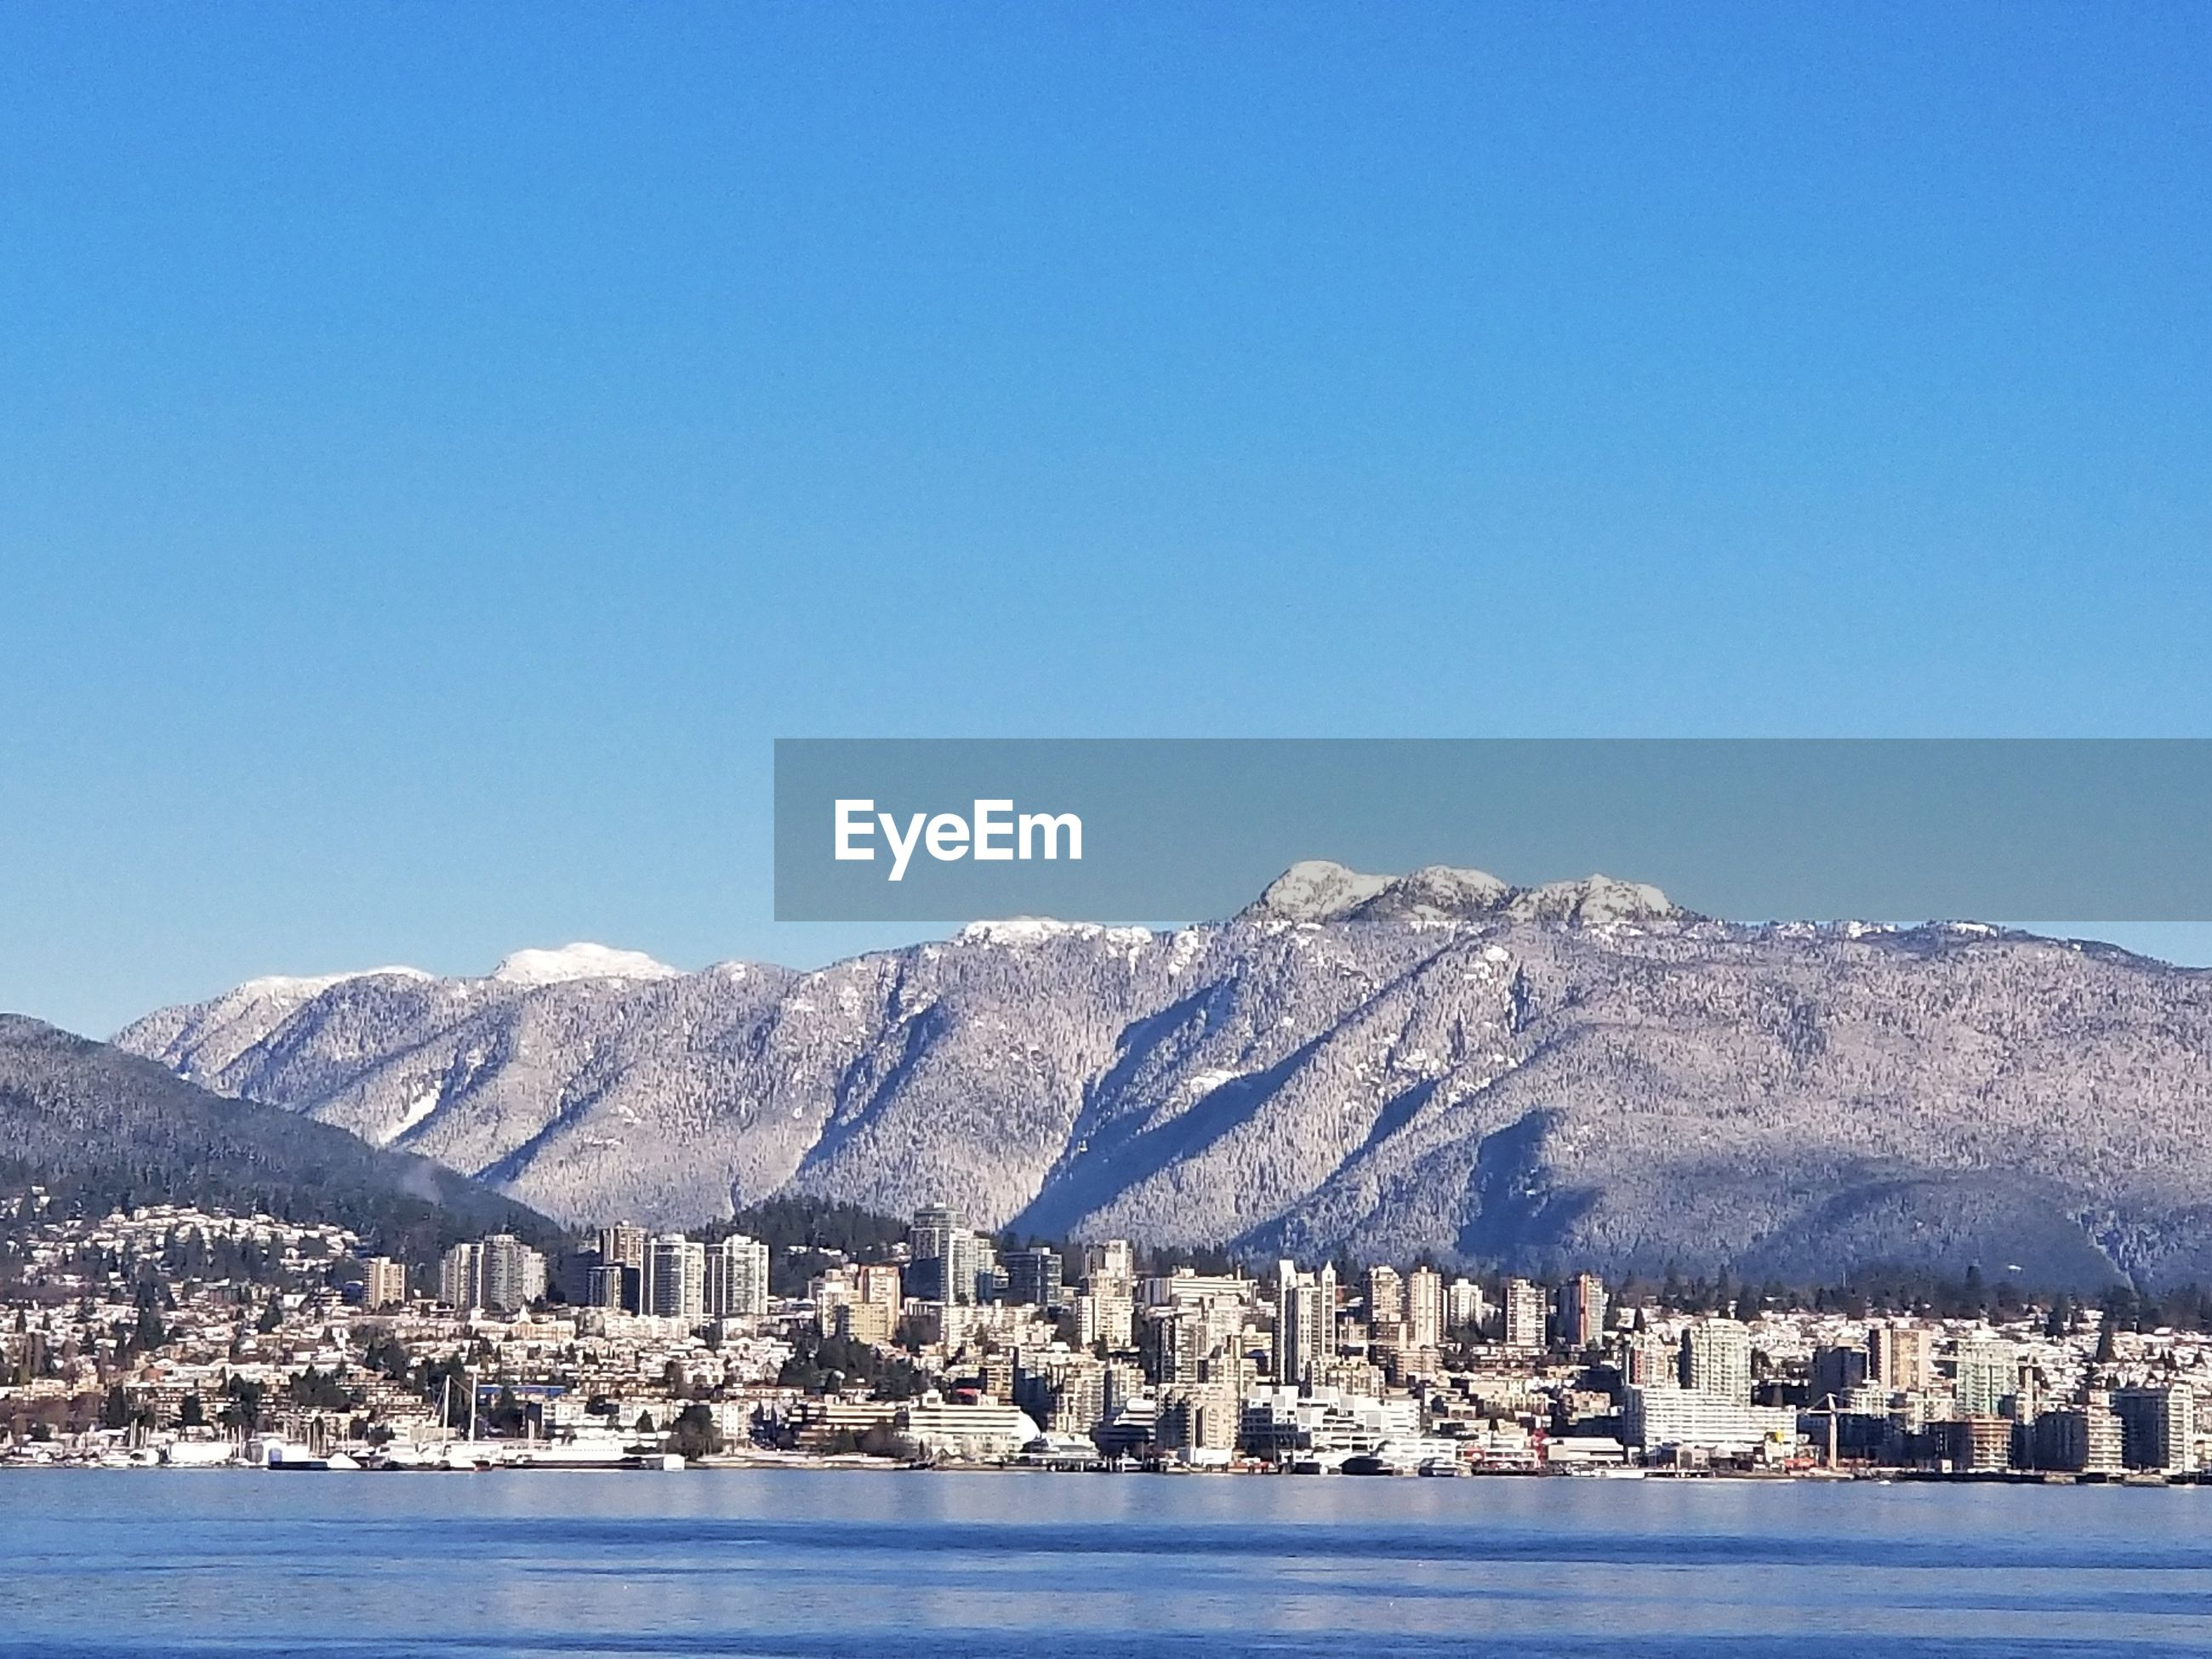 SCENIC VIEW OF SEA AND SNOWCAPPED MOUNTAIN AGAINST CLEAR BLUE SKY